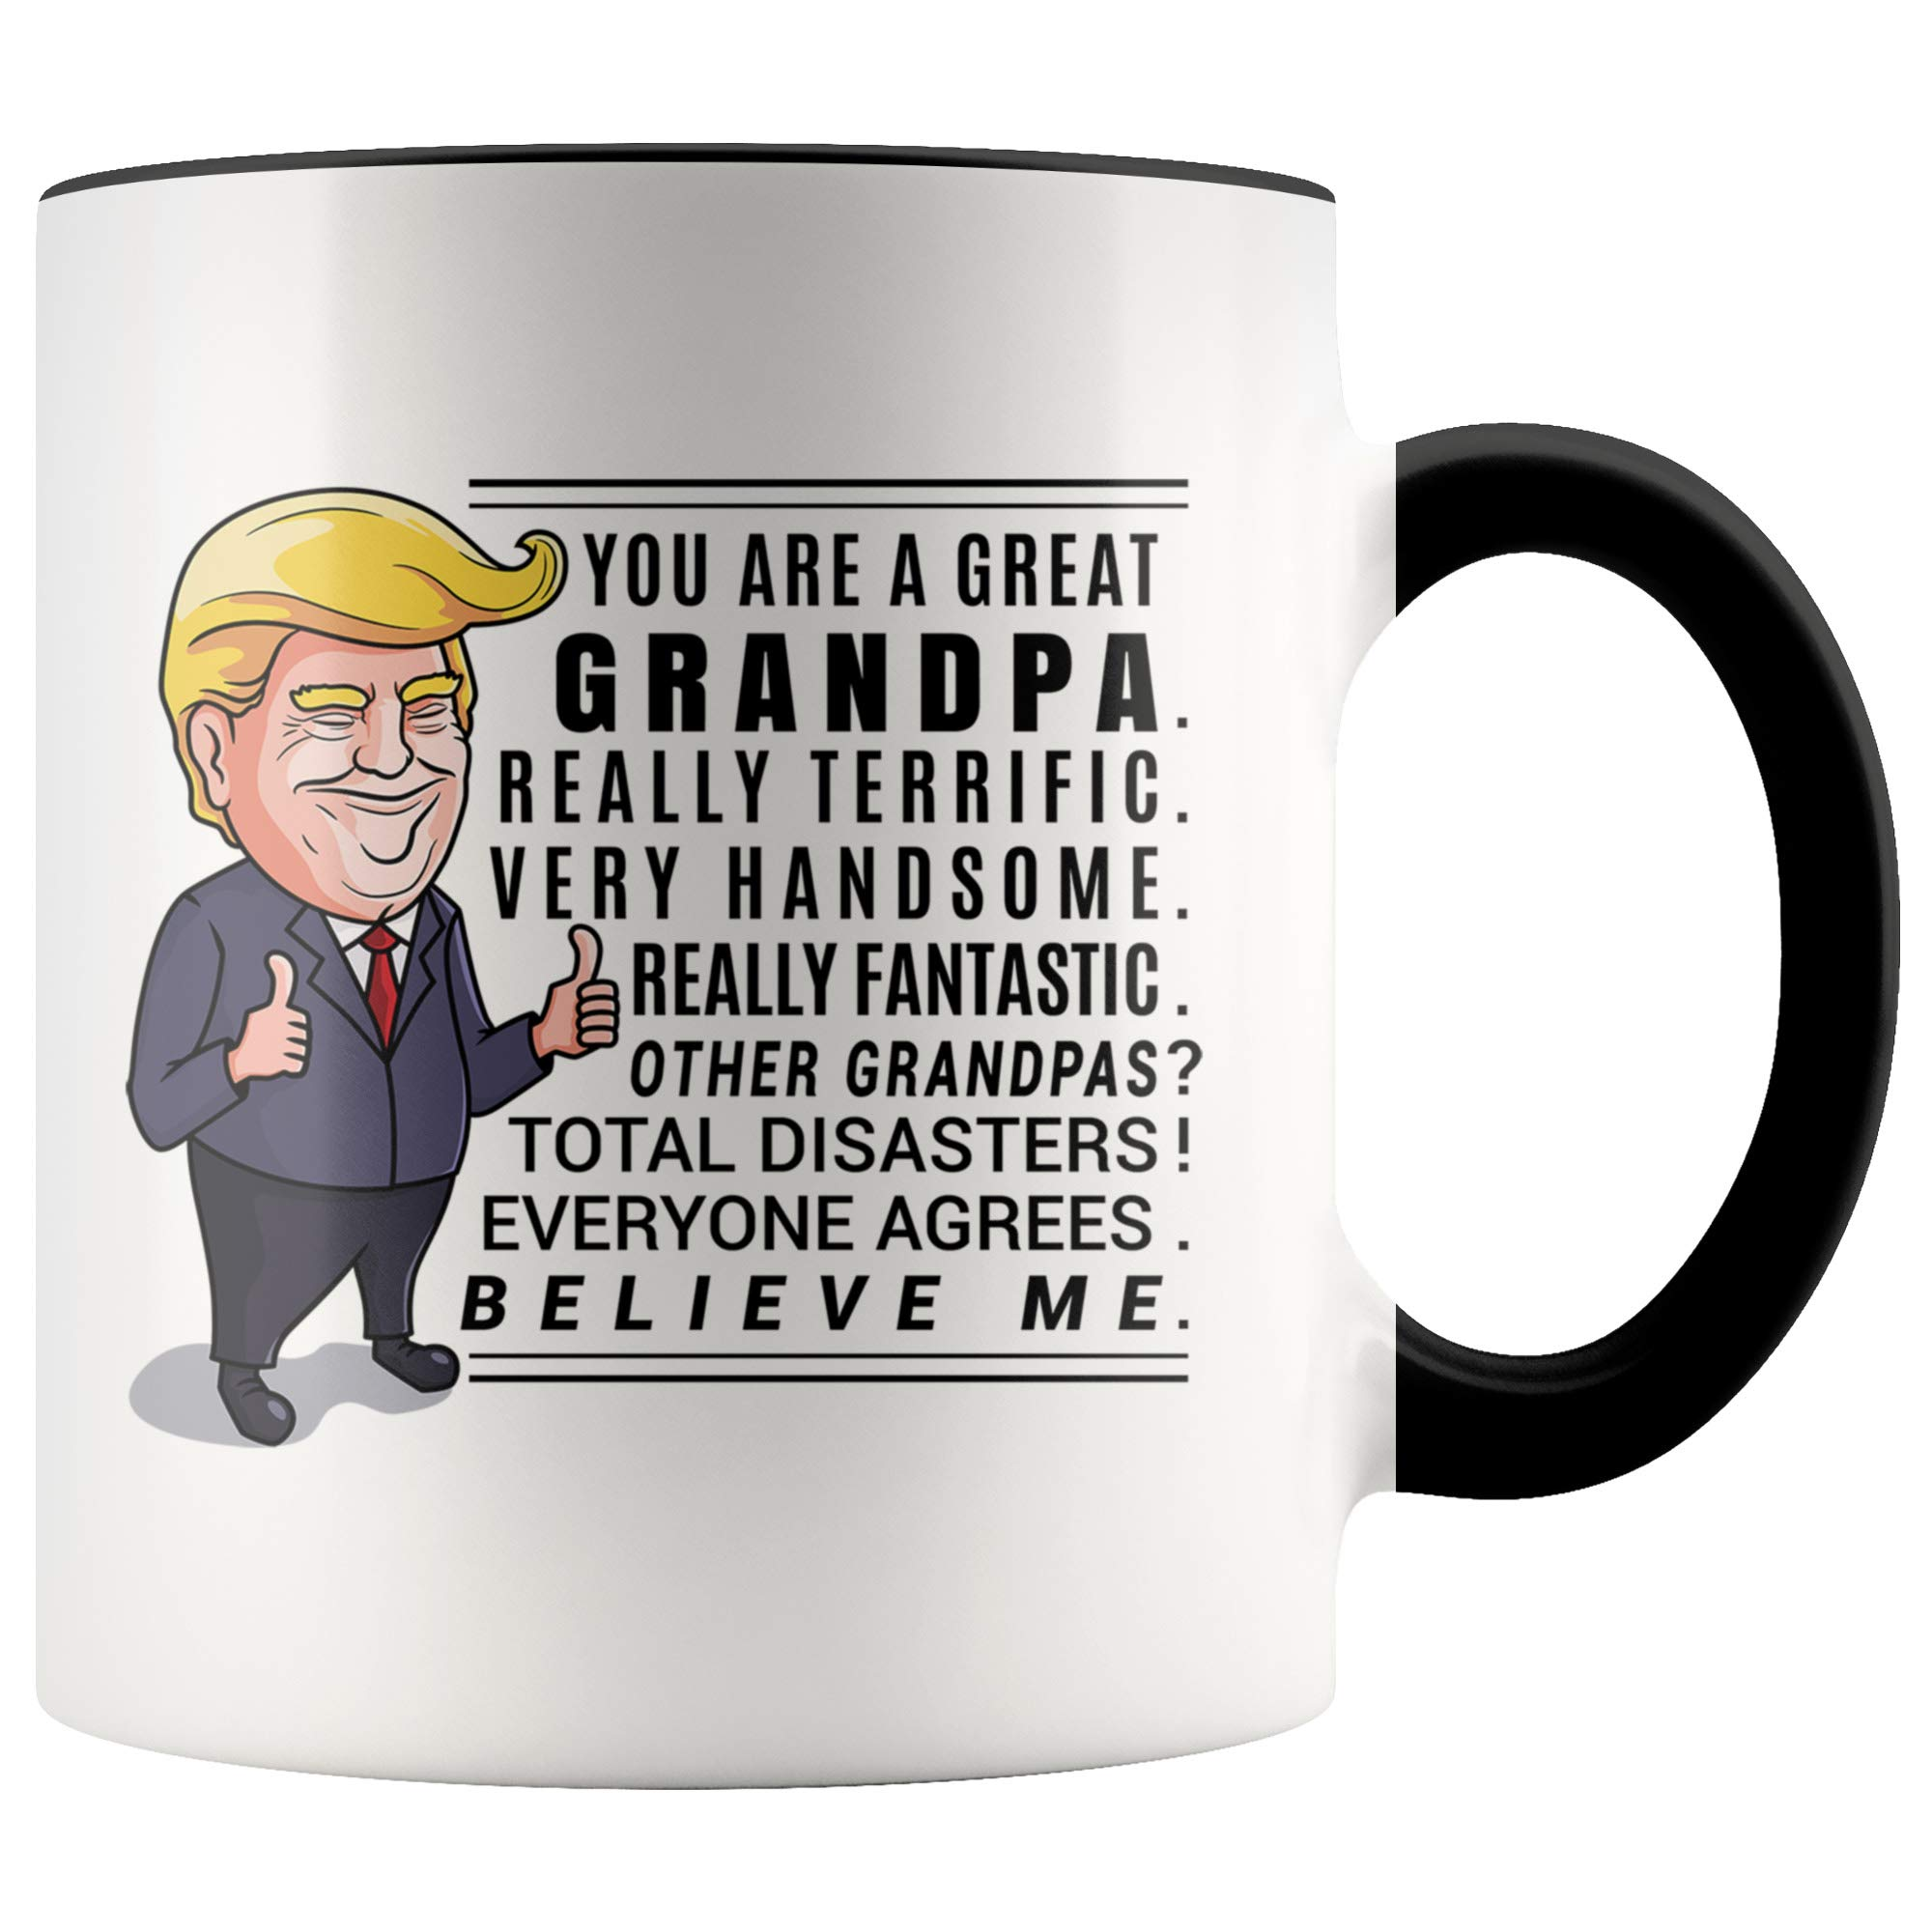 Donald Trump Fathers Day Mug Fathers Day Gifts Funny Coffee Mugs 1st Fathers Day Funny Gag Gifts for Men New Grandpa Present Best Birthday Christmas 4th July Fathers Day Gifts from Son Daughter Wife